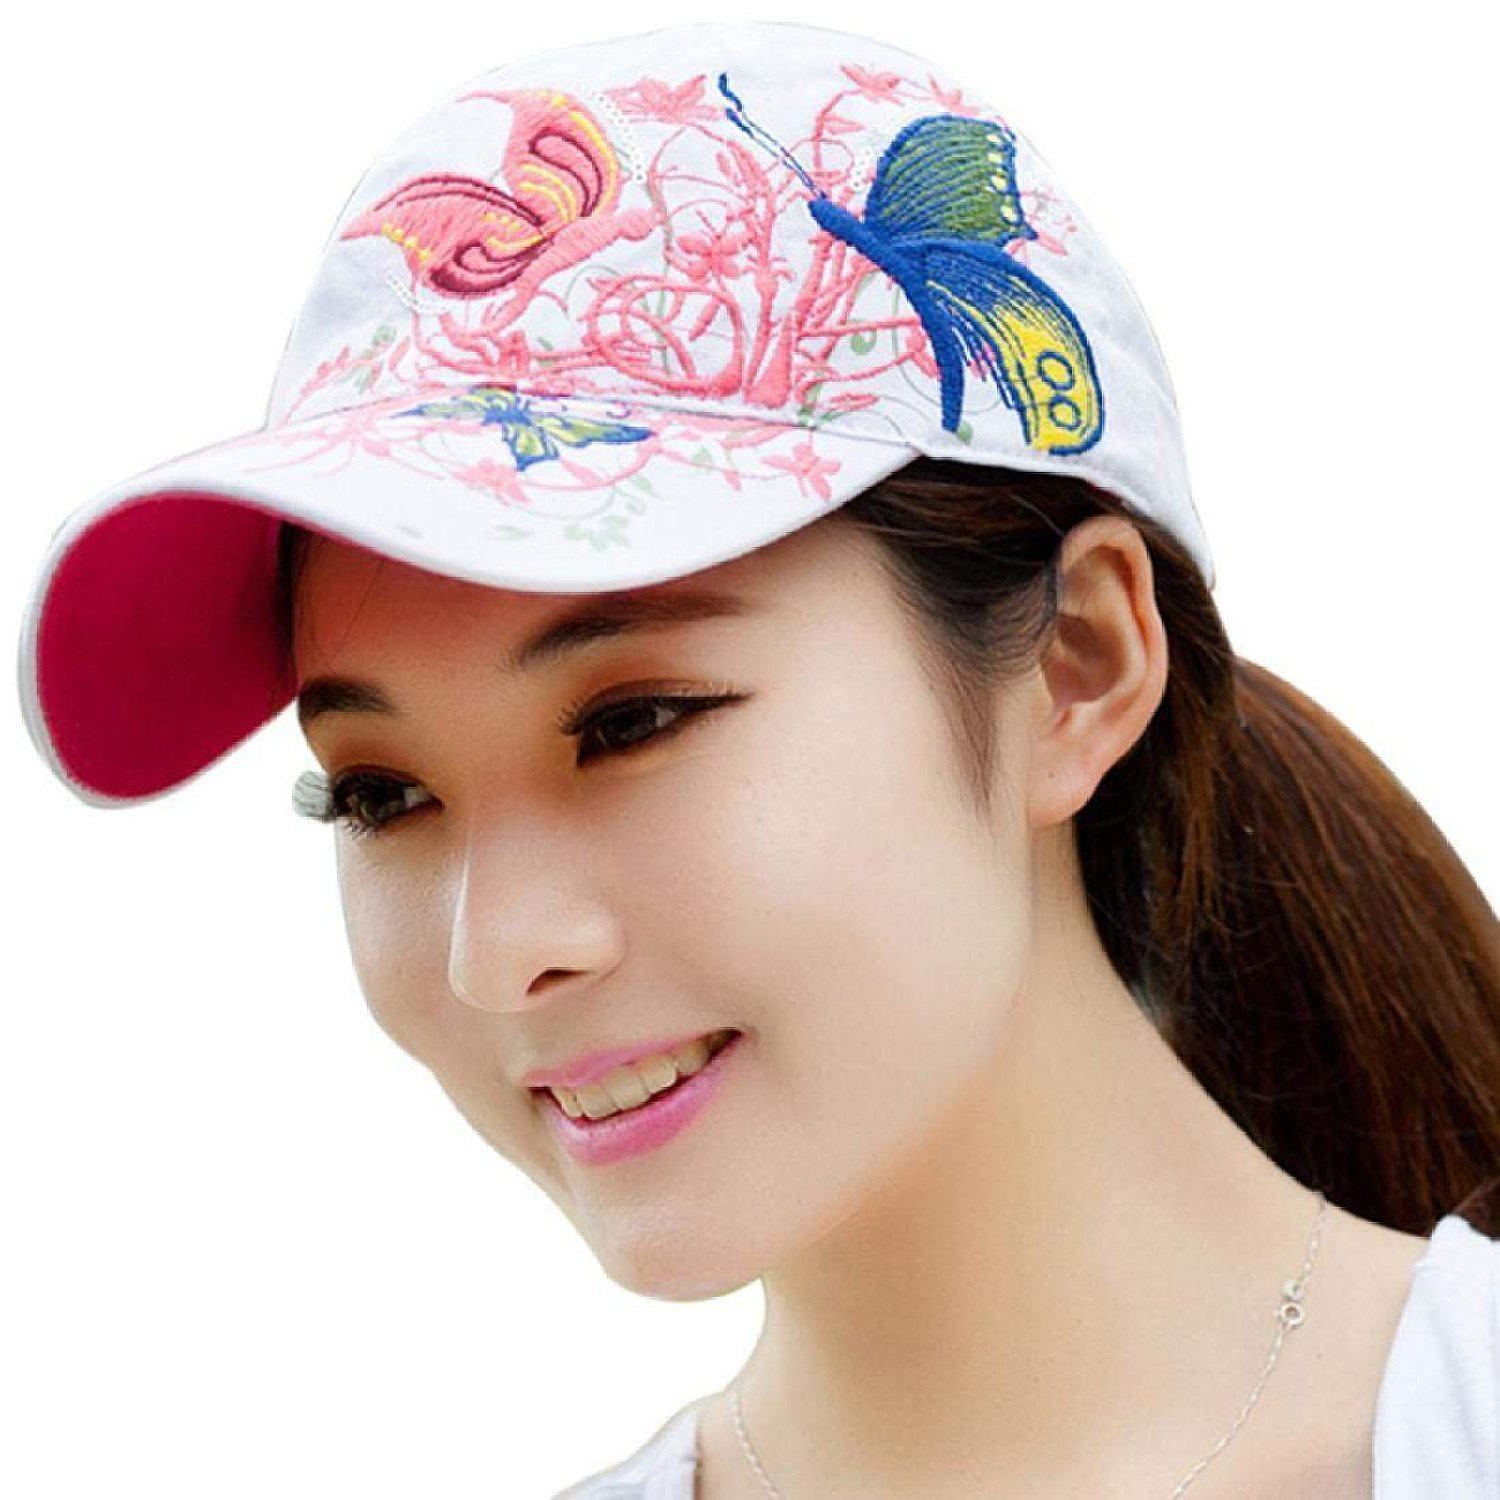 IMC Female hat sports girls golf baseball cap white